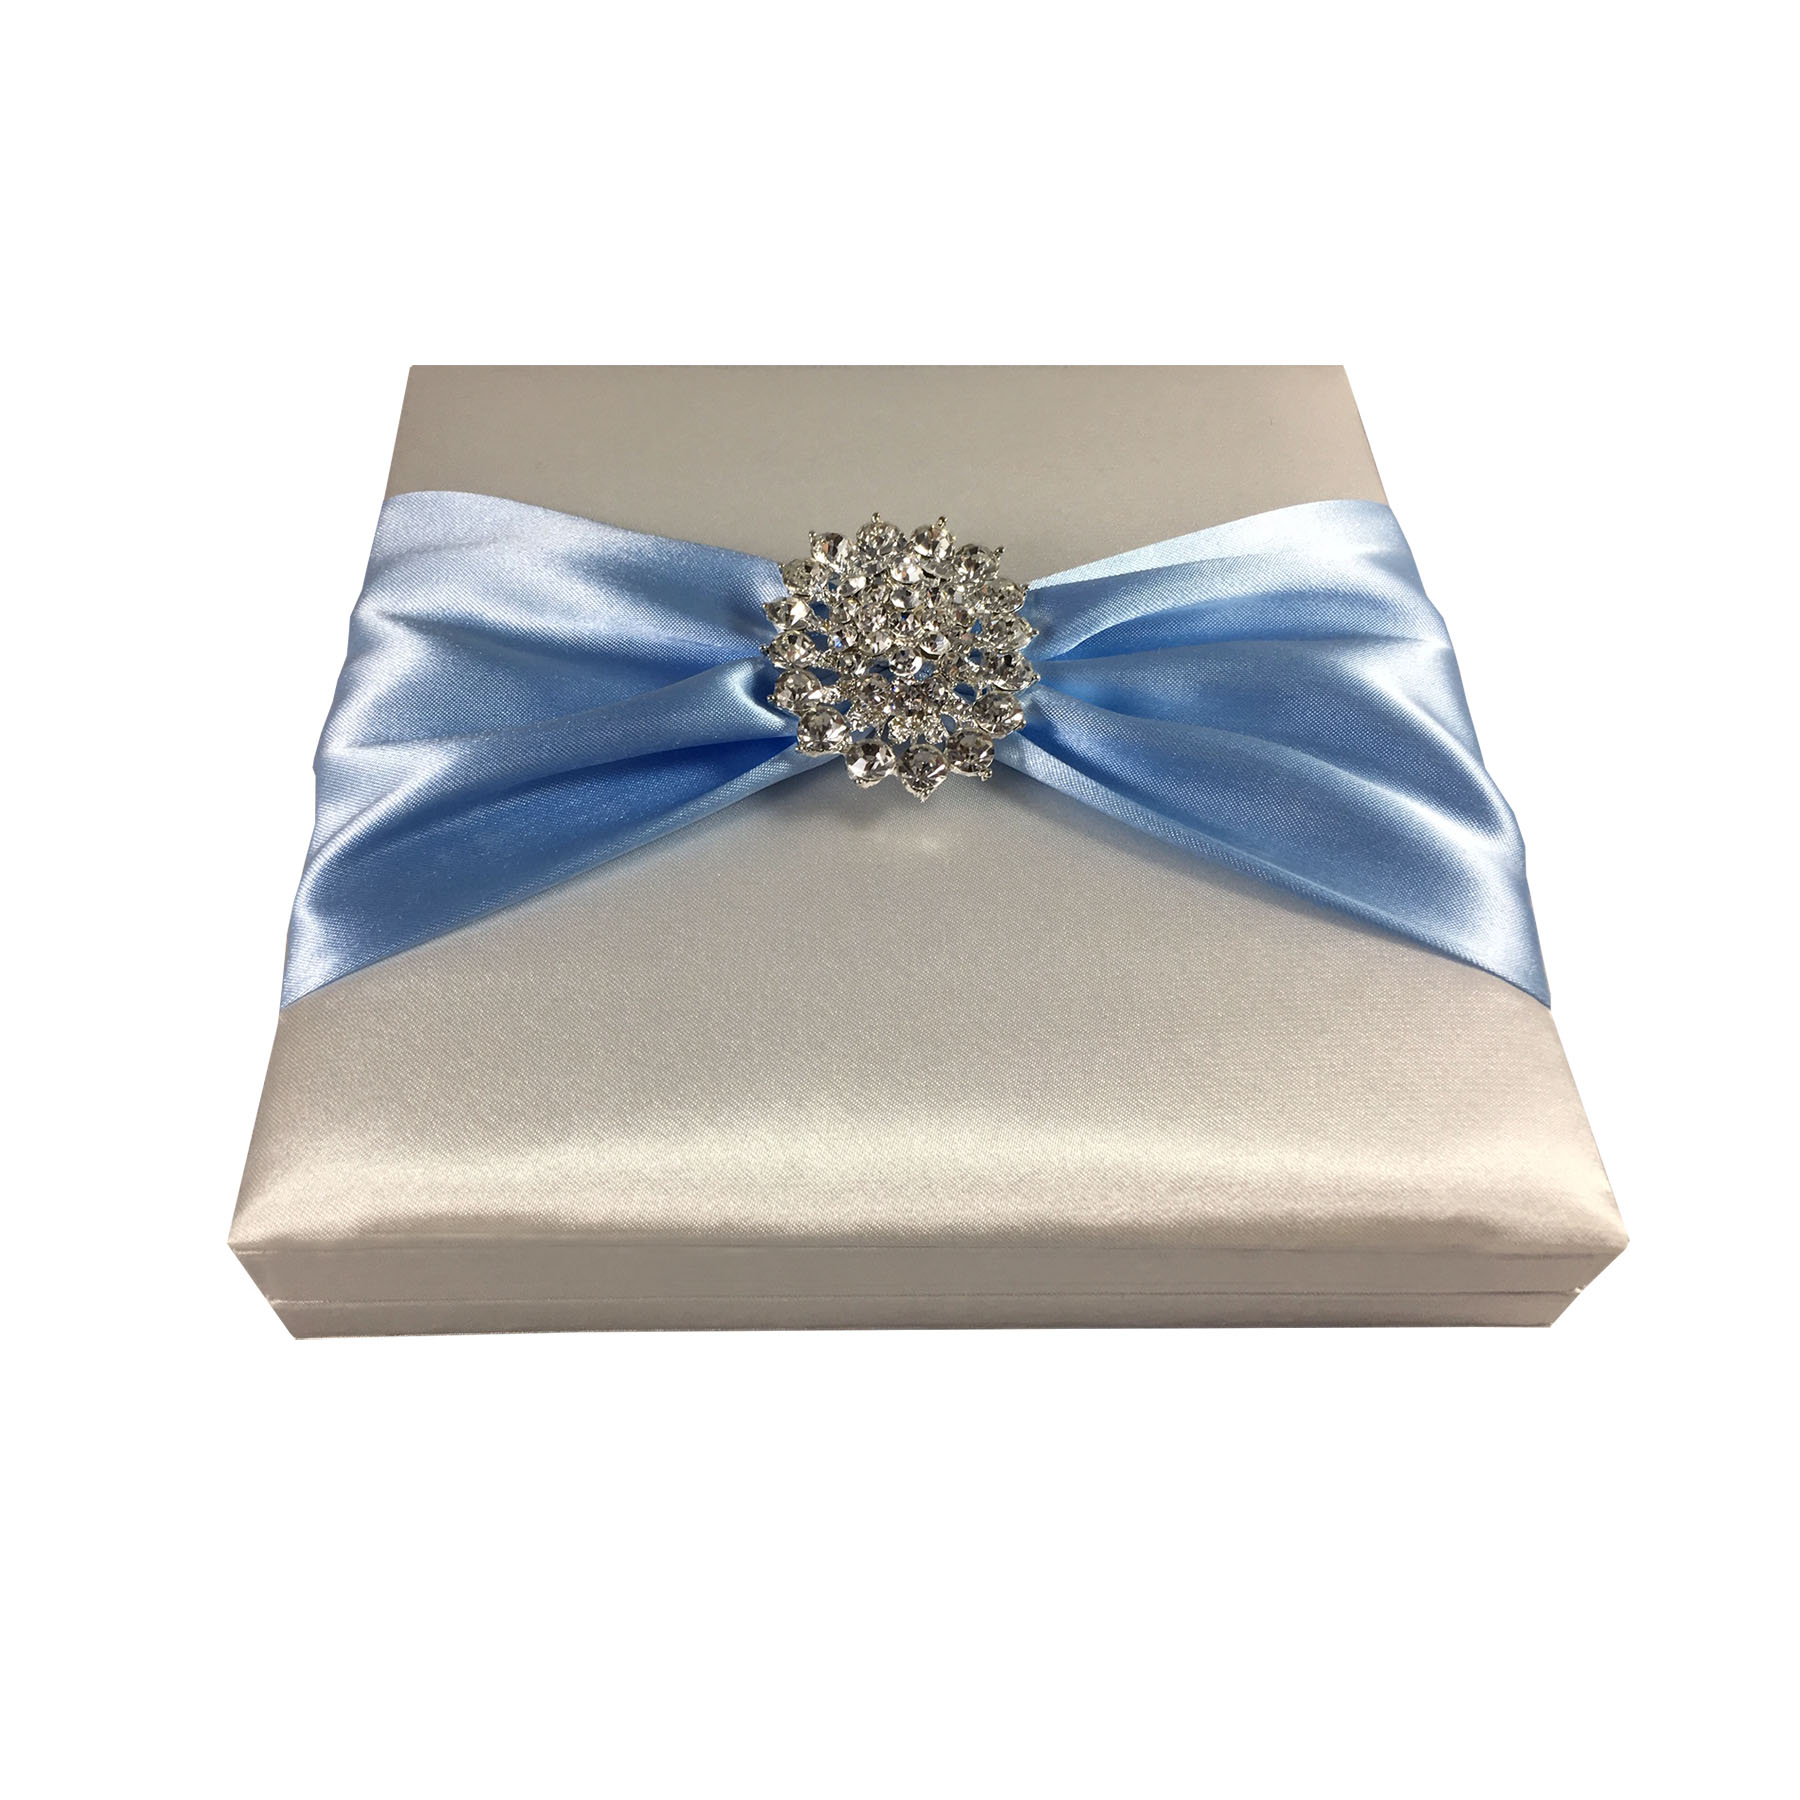 Extravagant boxed wedding invitations